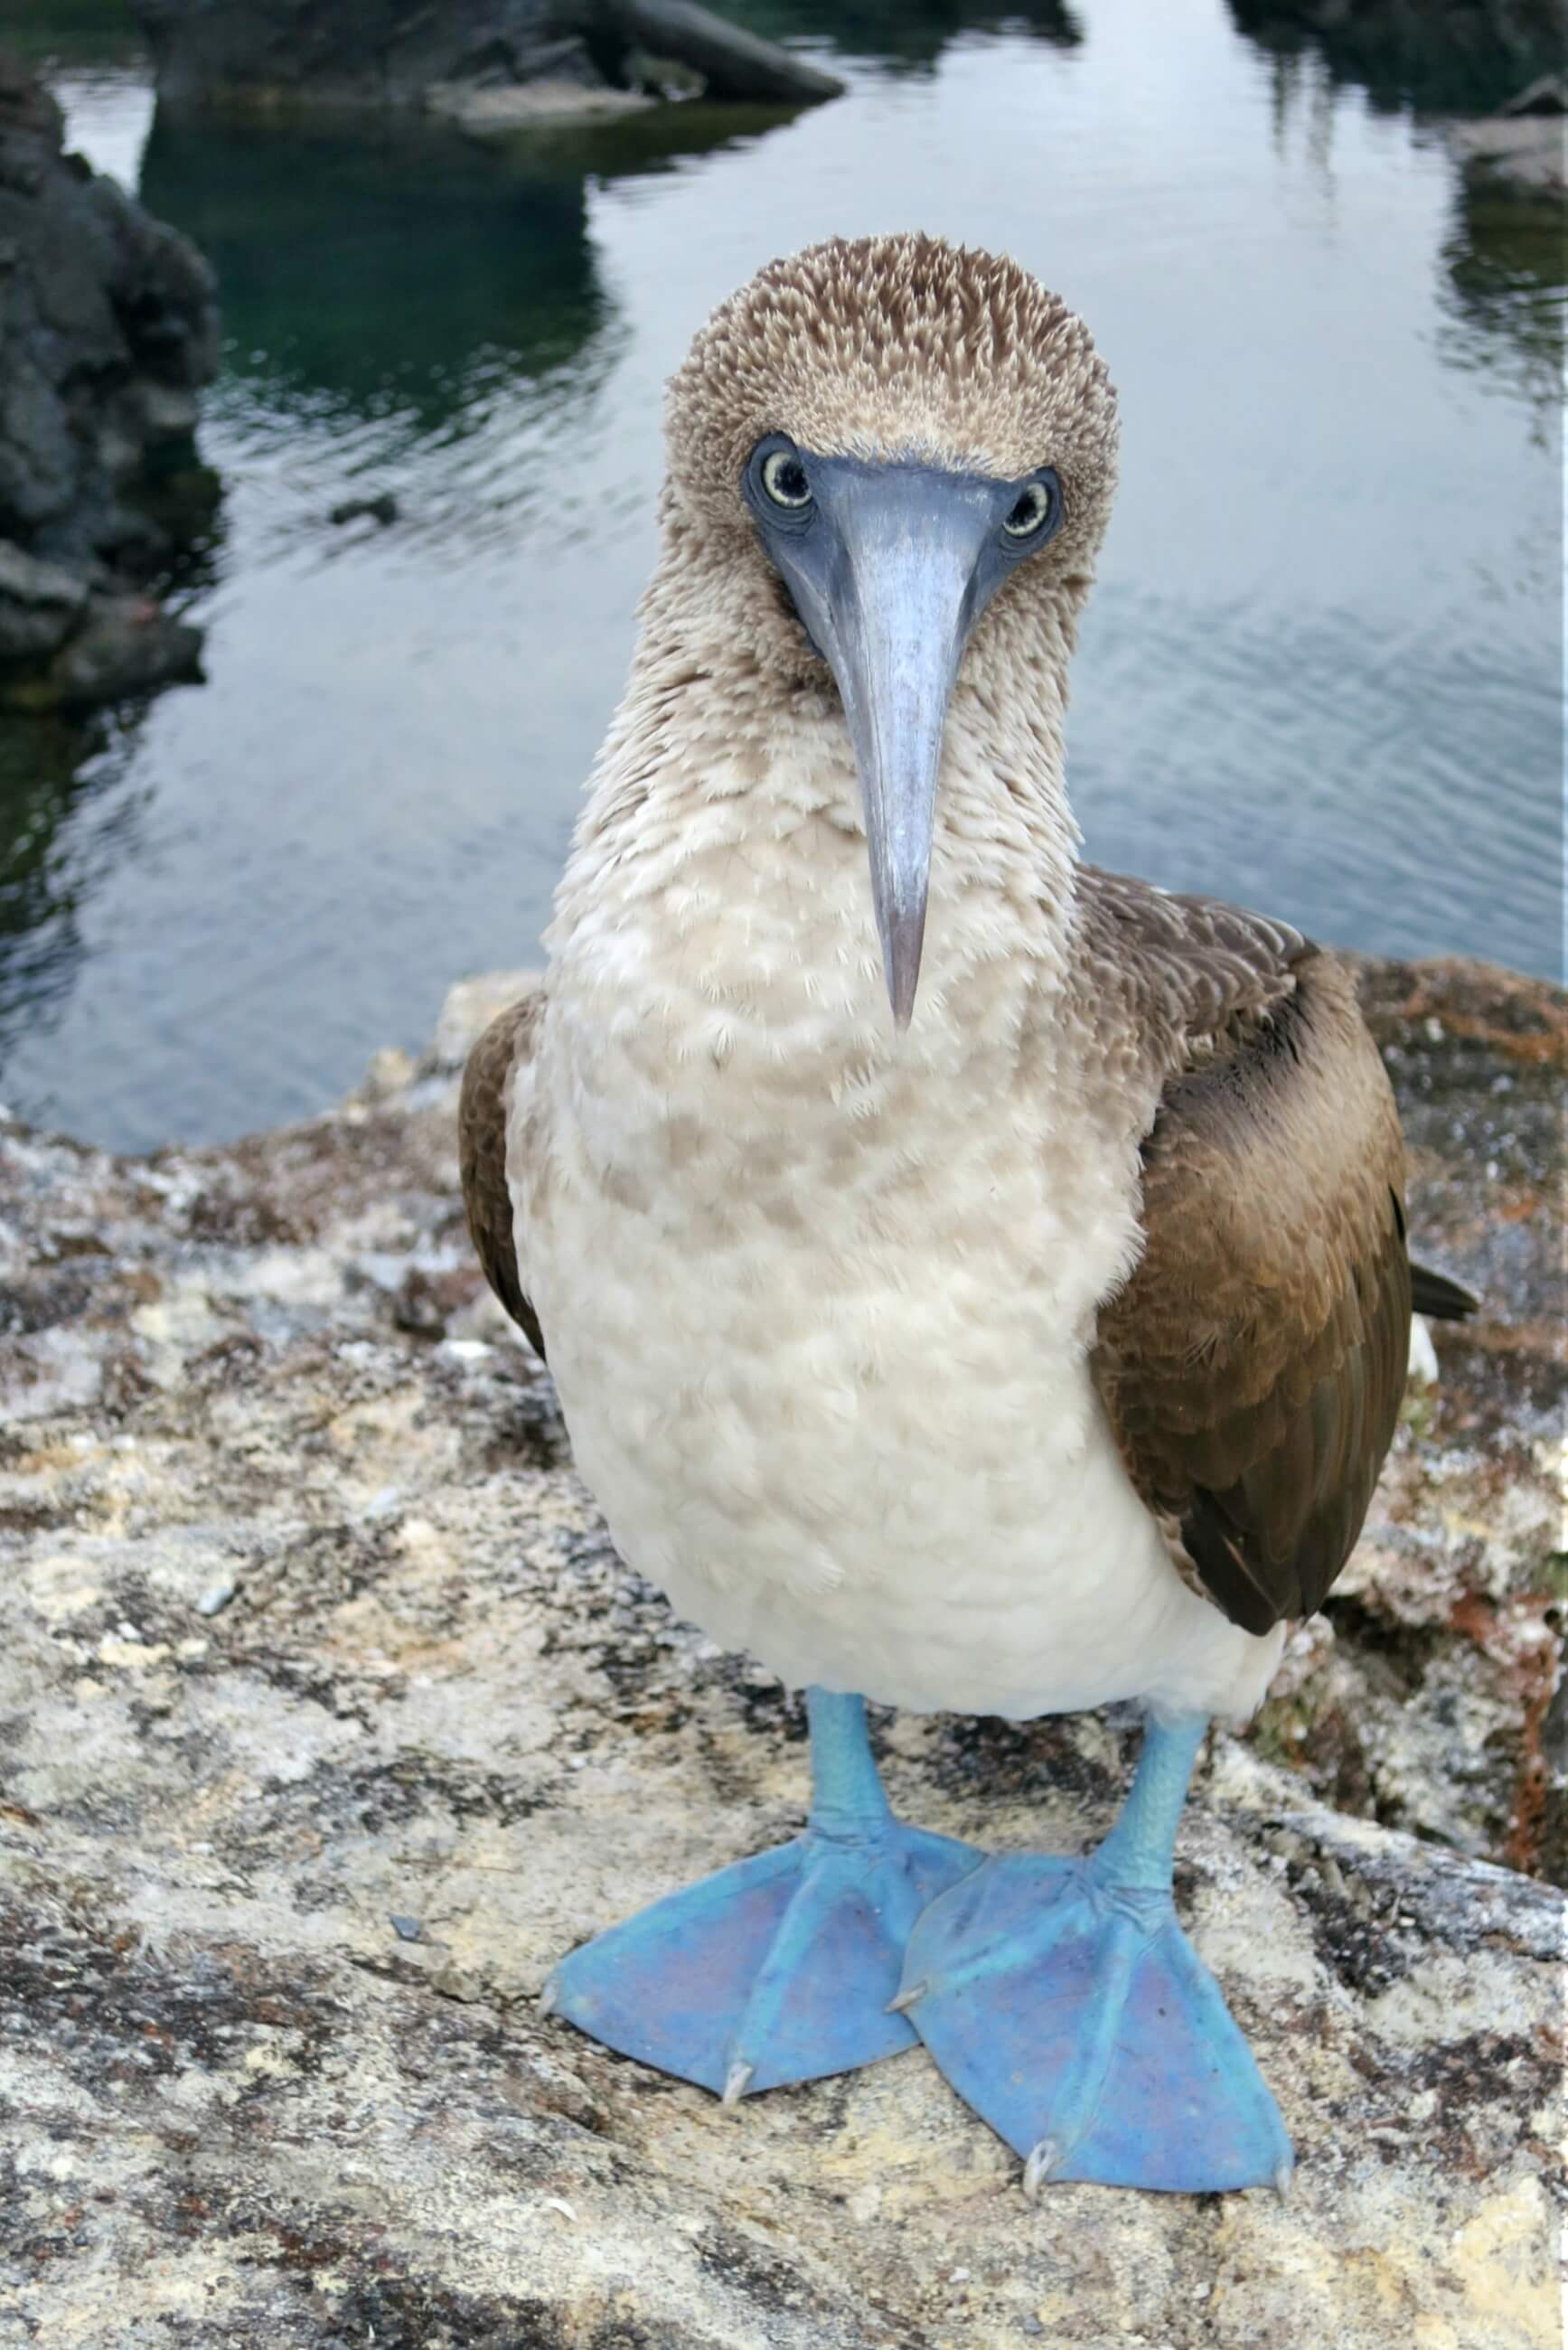 A female blue footed booby on the Los Tuneles tour, from Isla Isabela, in the Galapagos Islands! Self guided visit to Las Grietas, near Punta Estrada, in Puerto Ayora, Santa Cruz Island, Galapagos, Ecuador. Read our complete guide to the Galapagos Islands without a cruise!